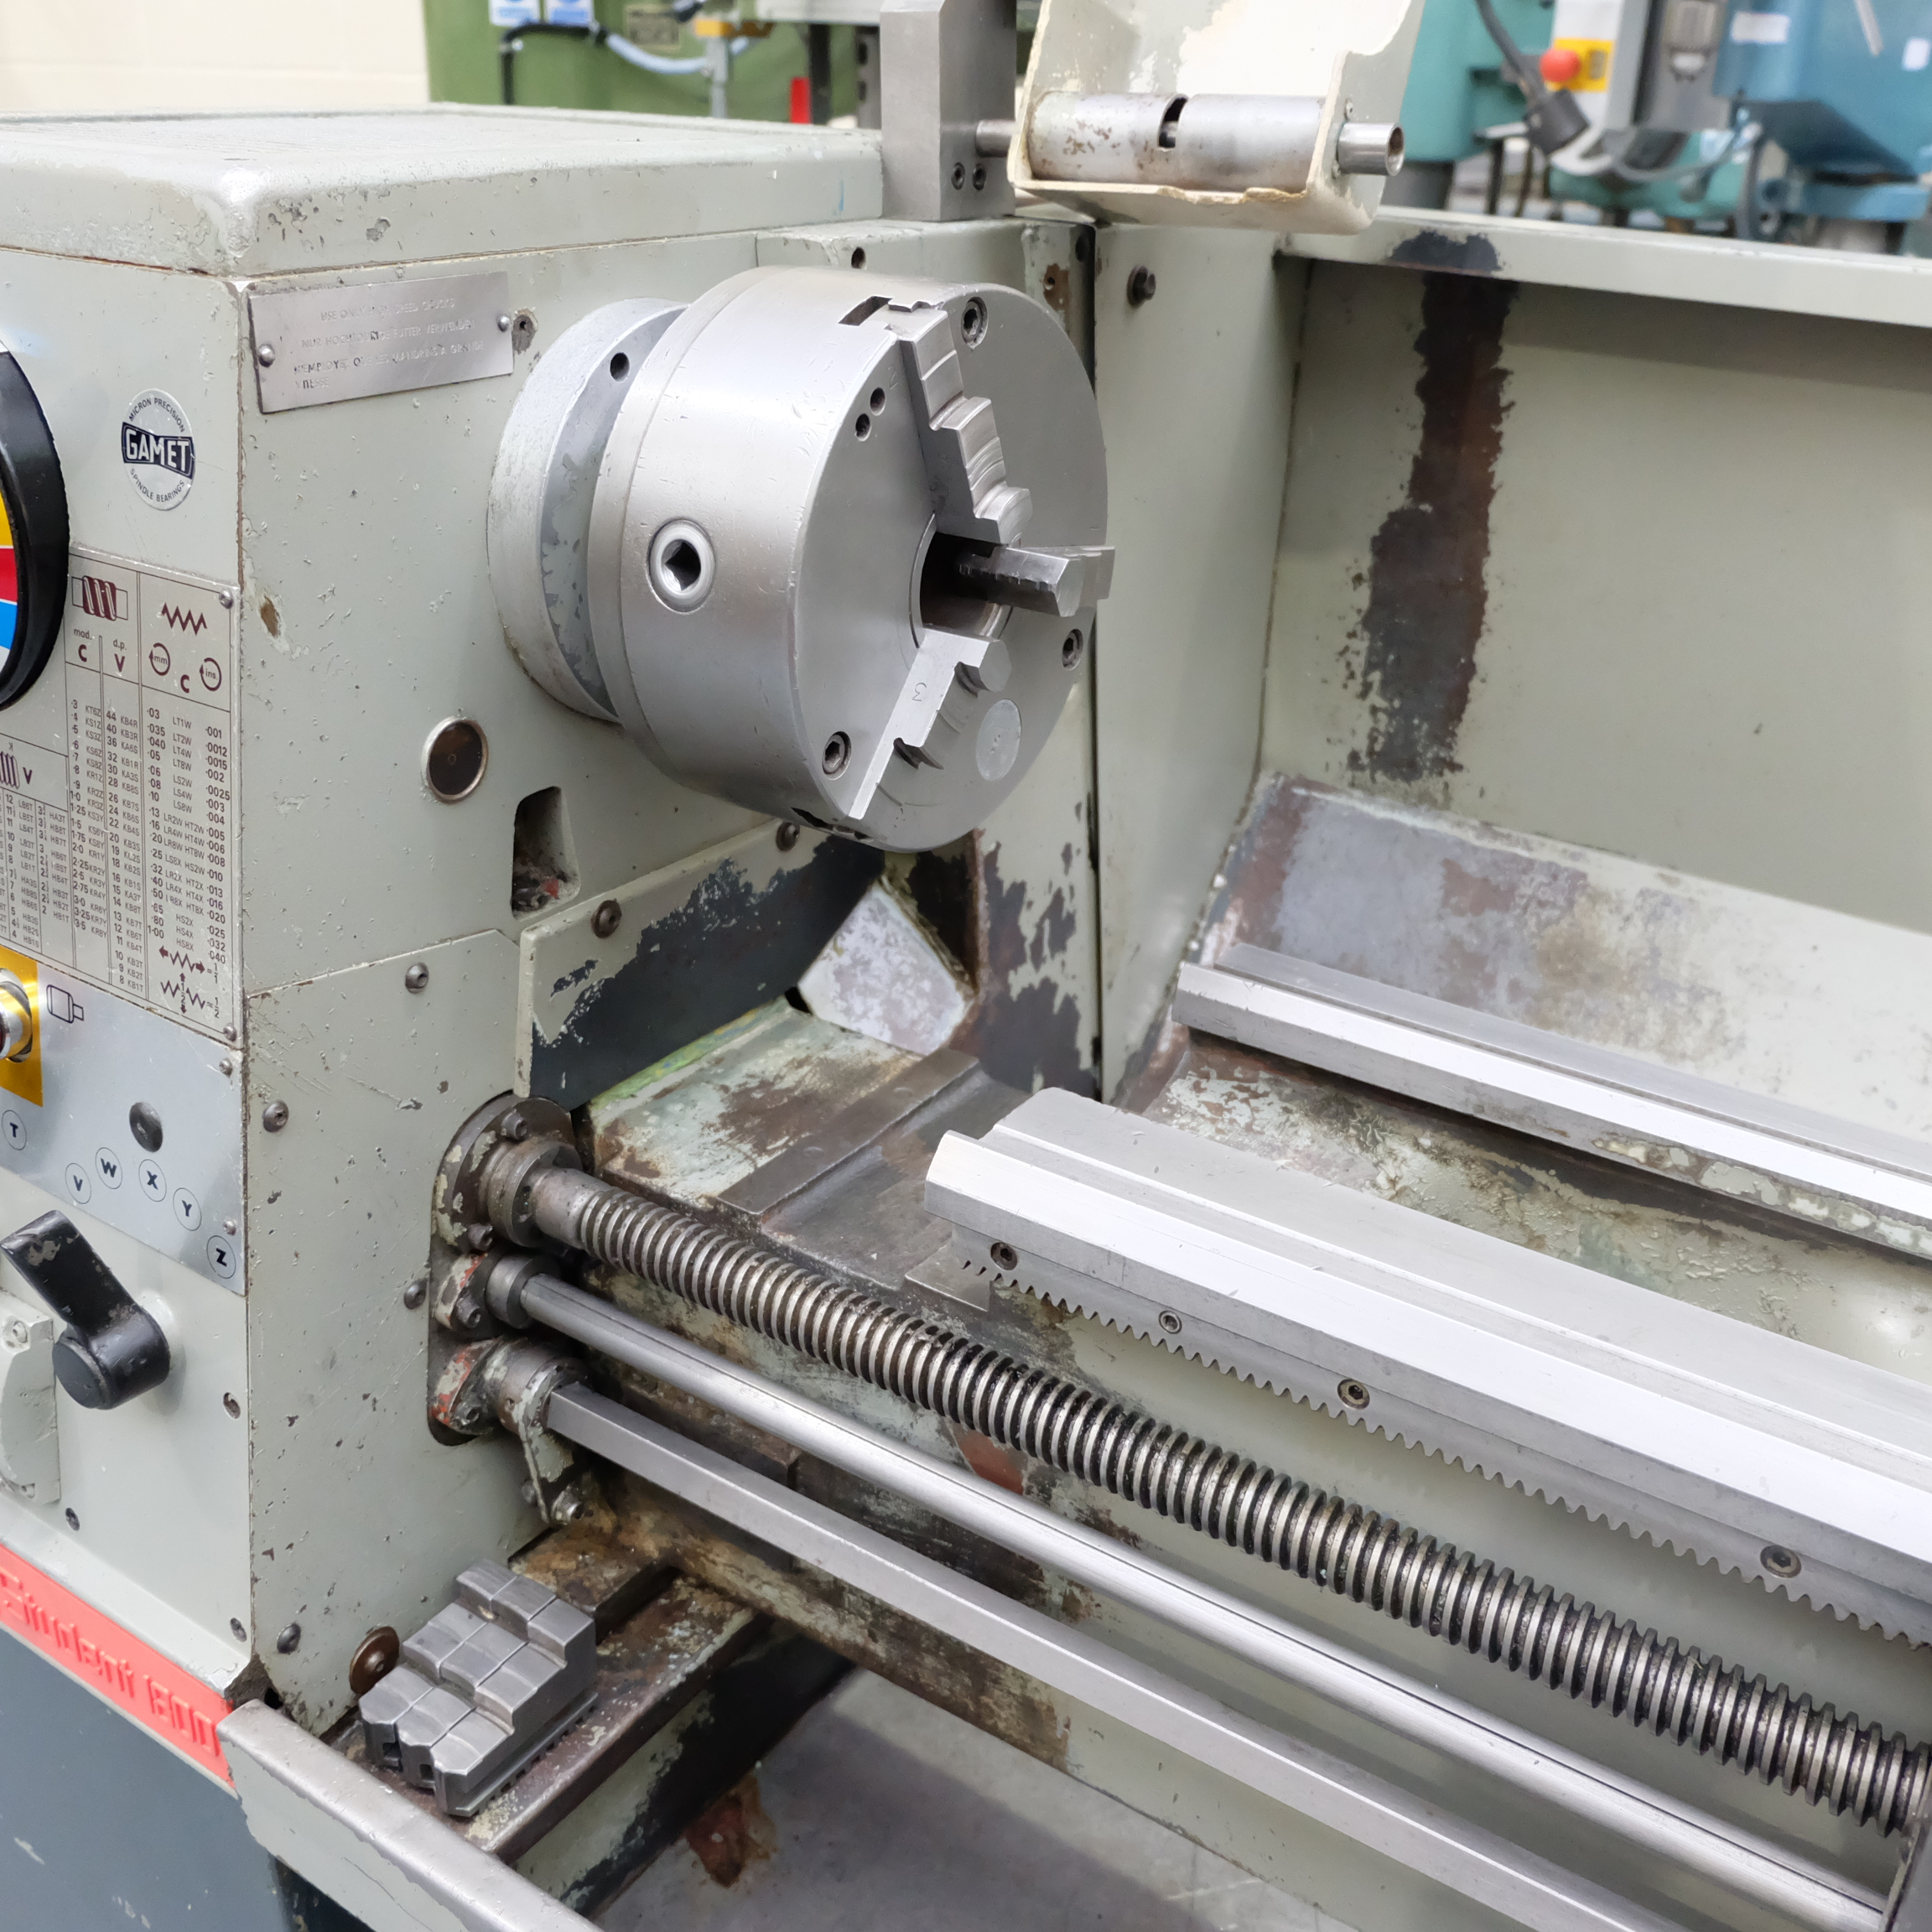 Colchester Student Gap Bed Centre Lathe. - Image 4 of 7